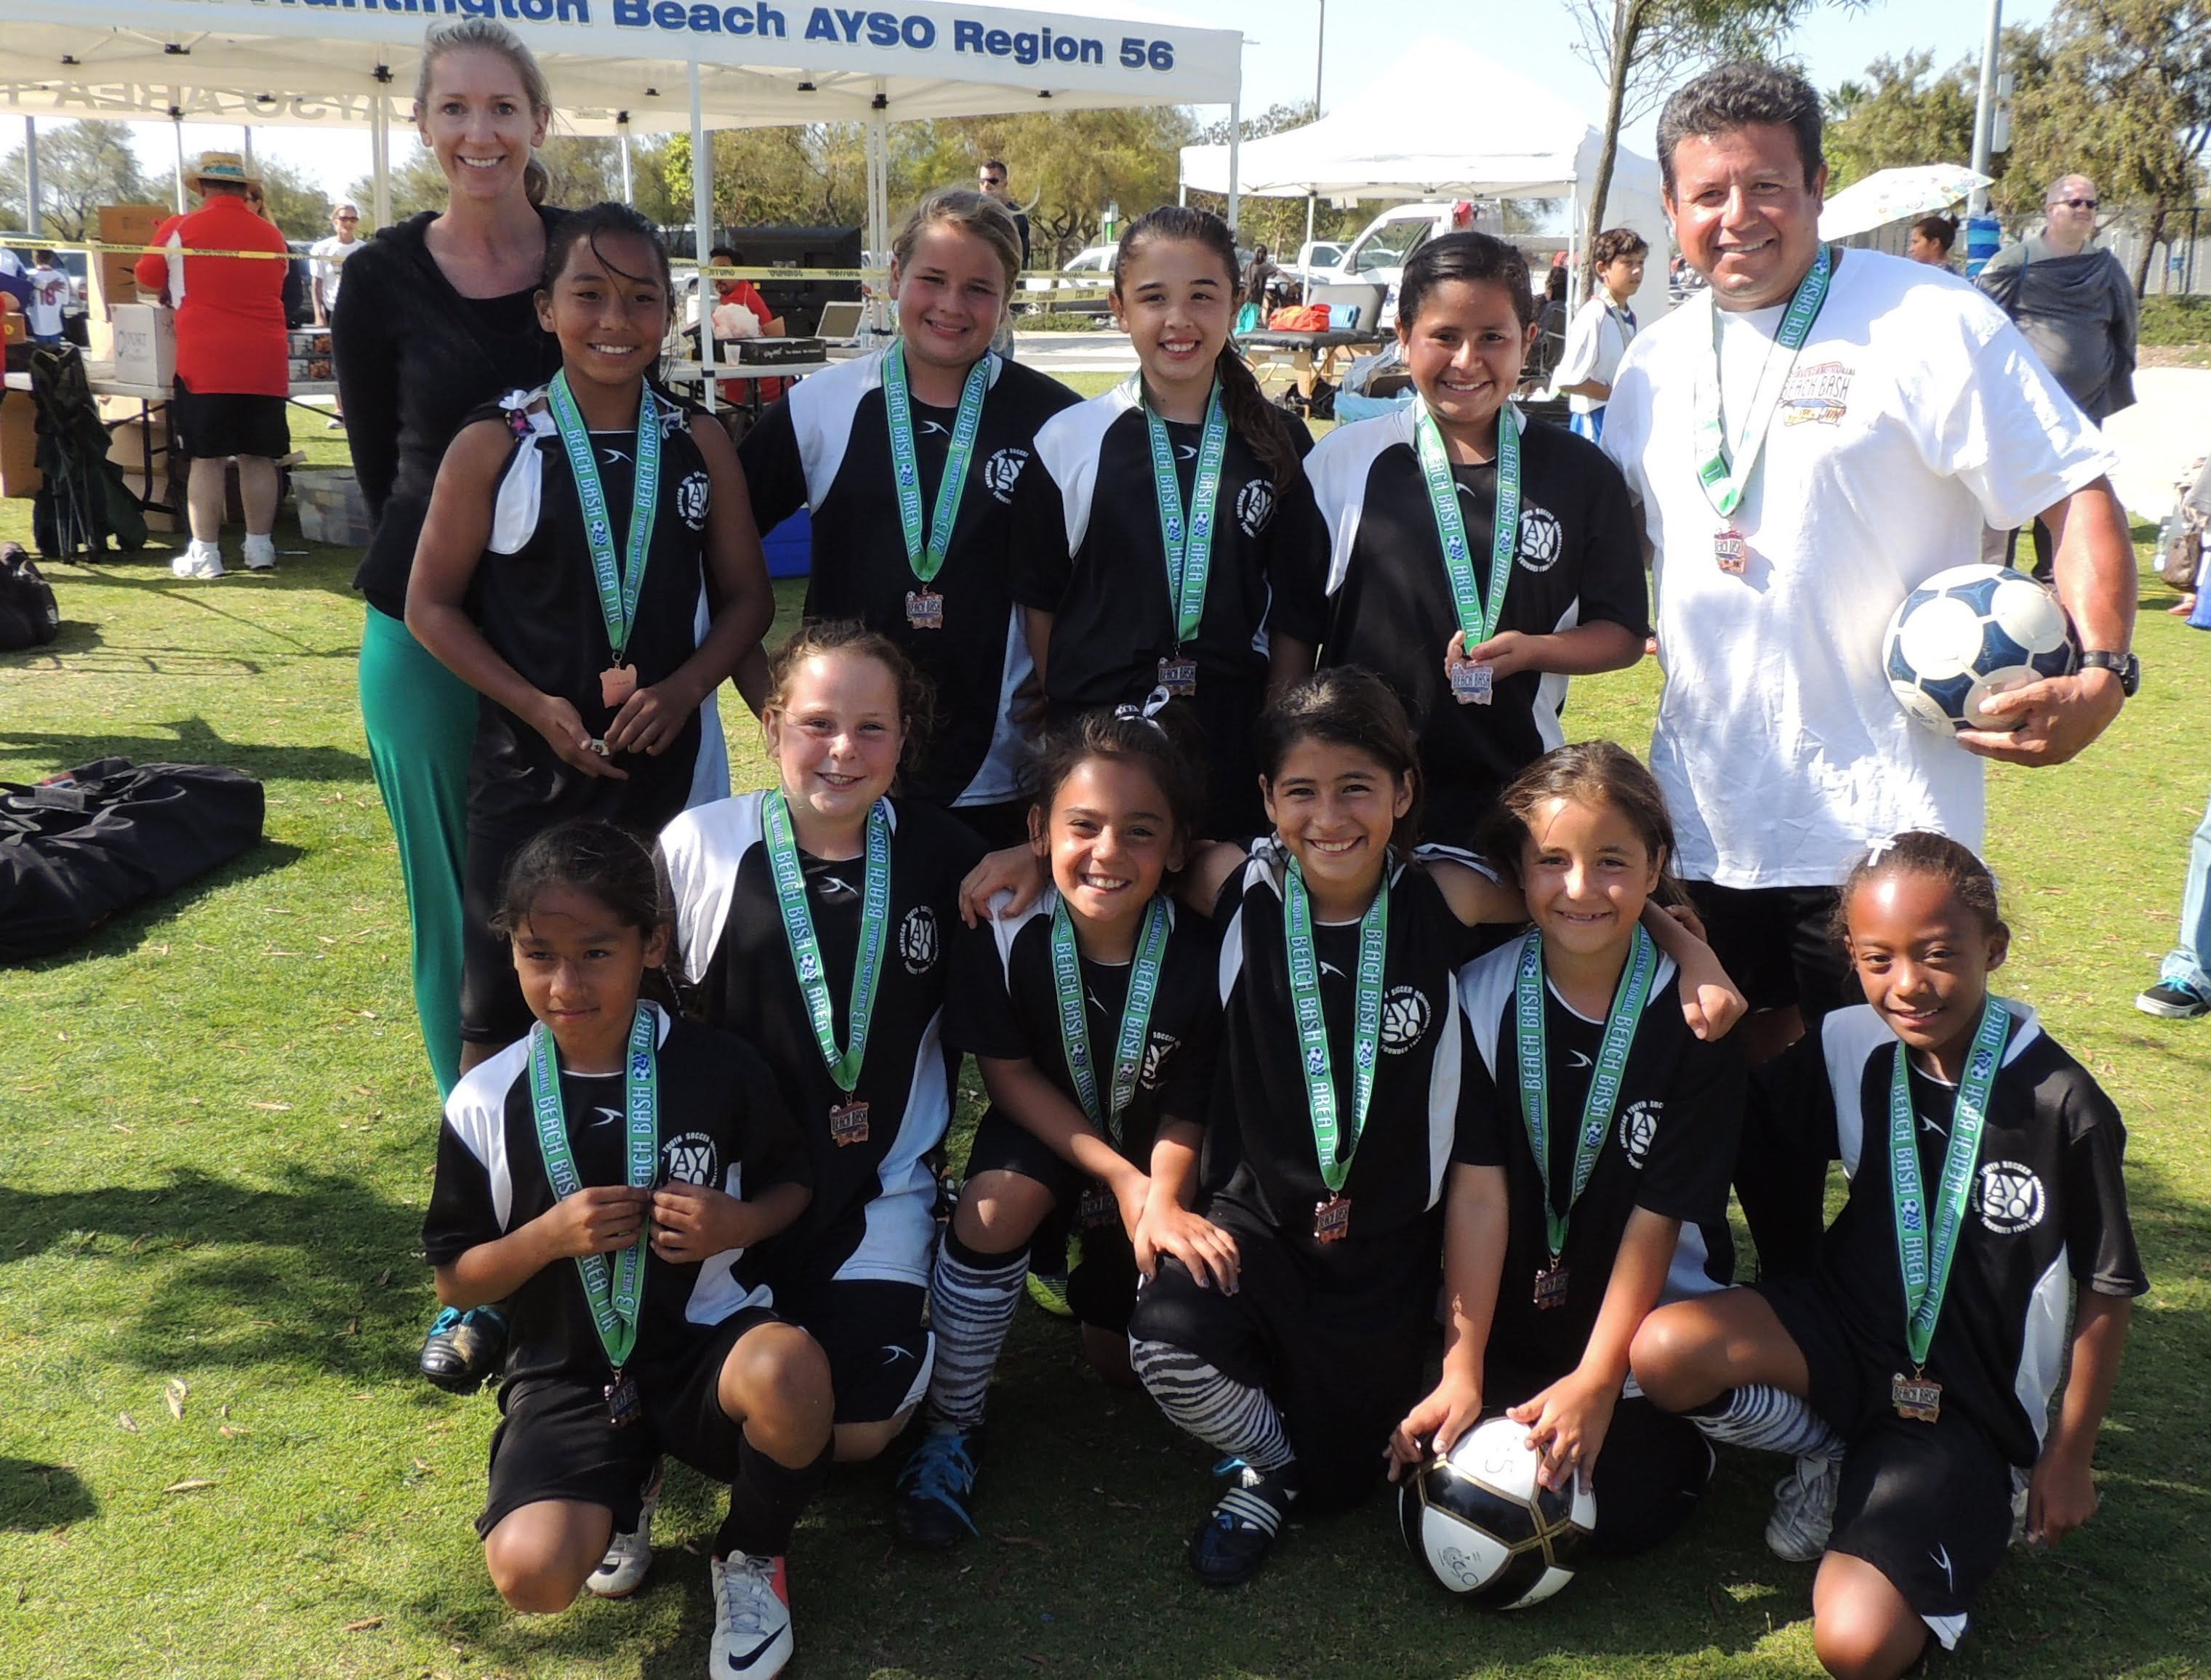 2013 Mike Fults Area K Beach Bash U10G 3rd Place